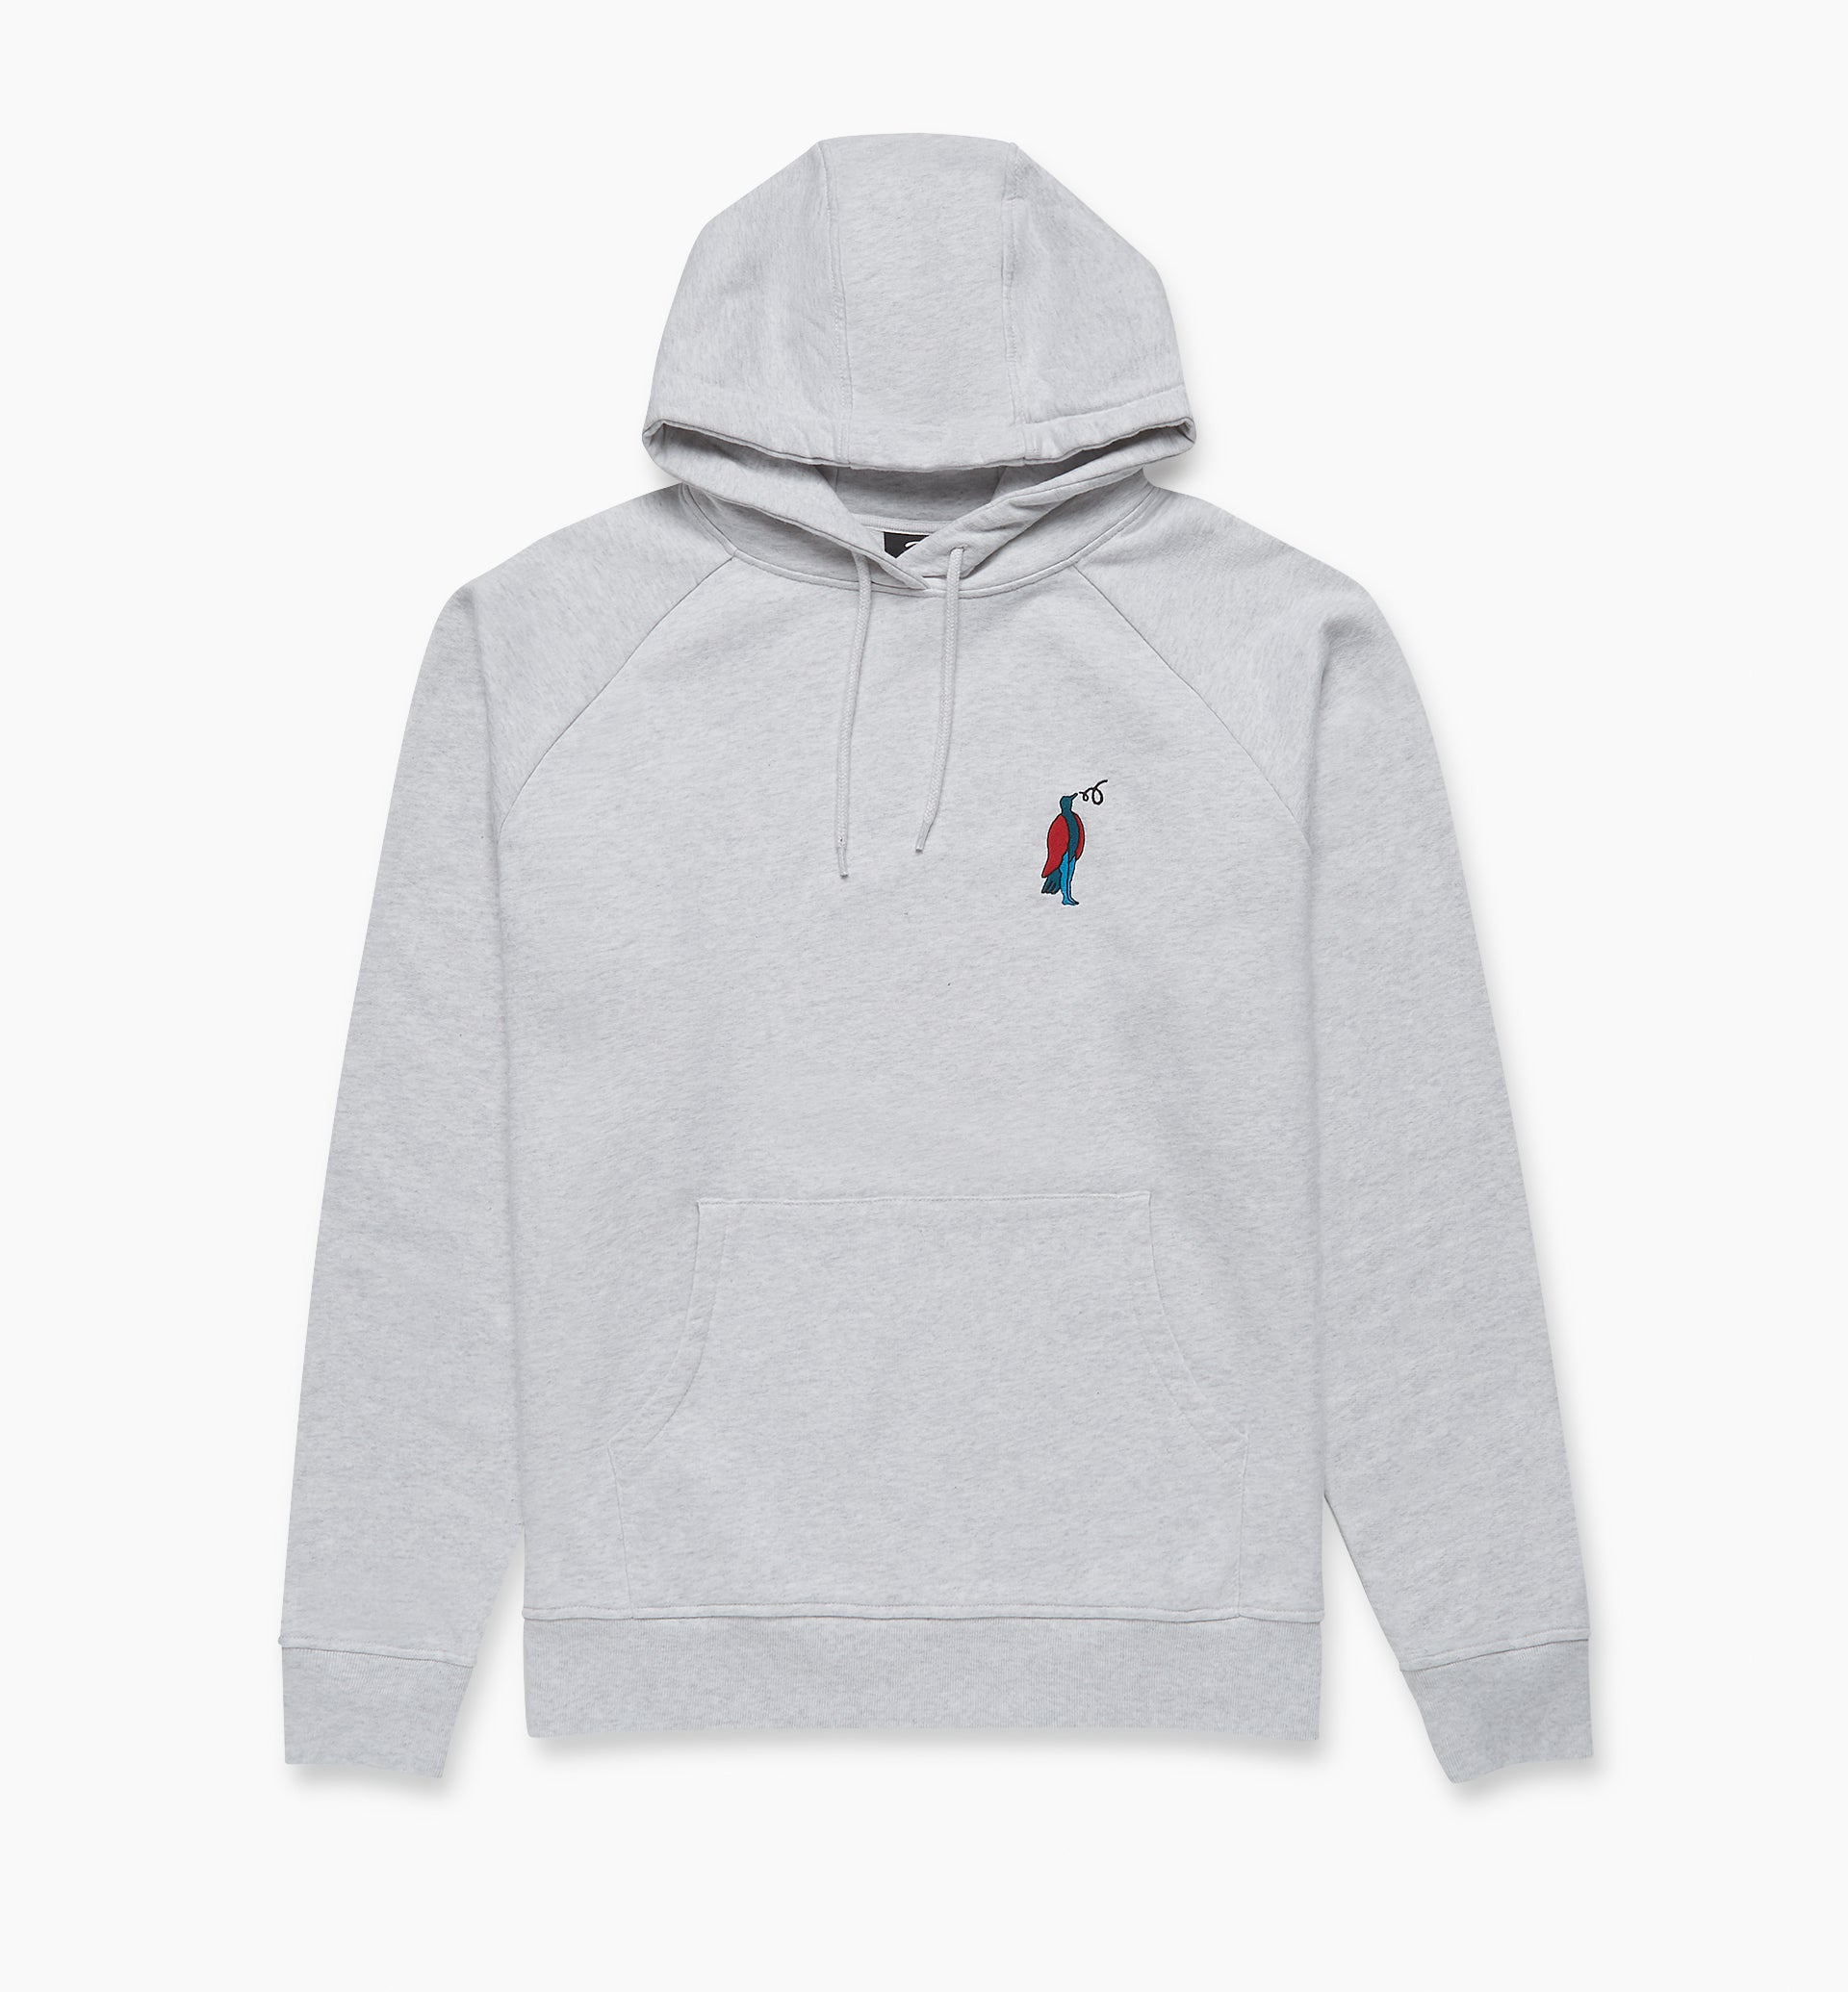 Parra - staring hooded sweatshirt